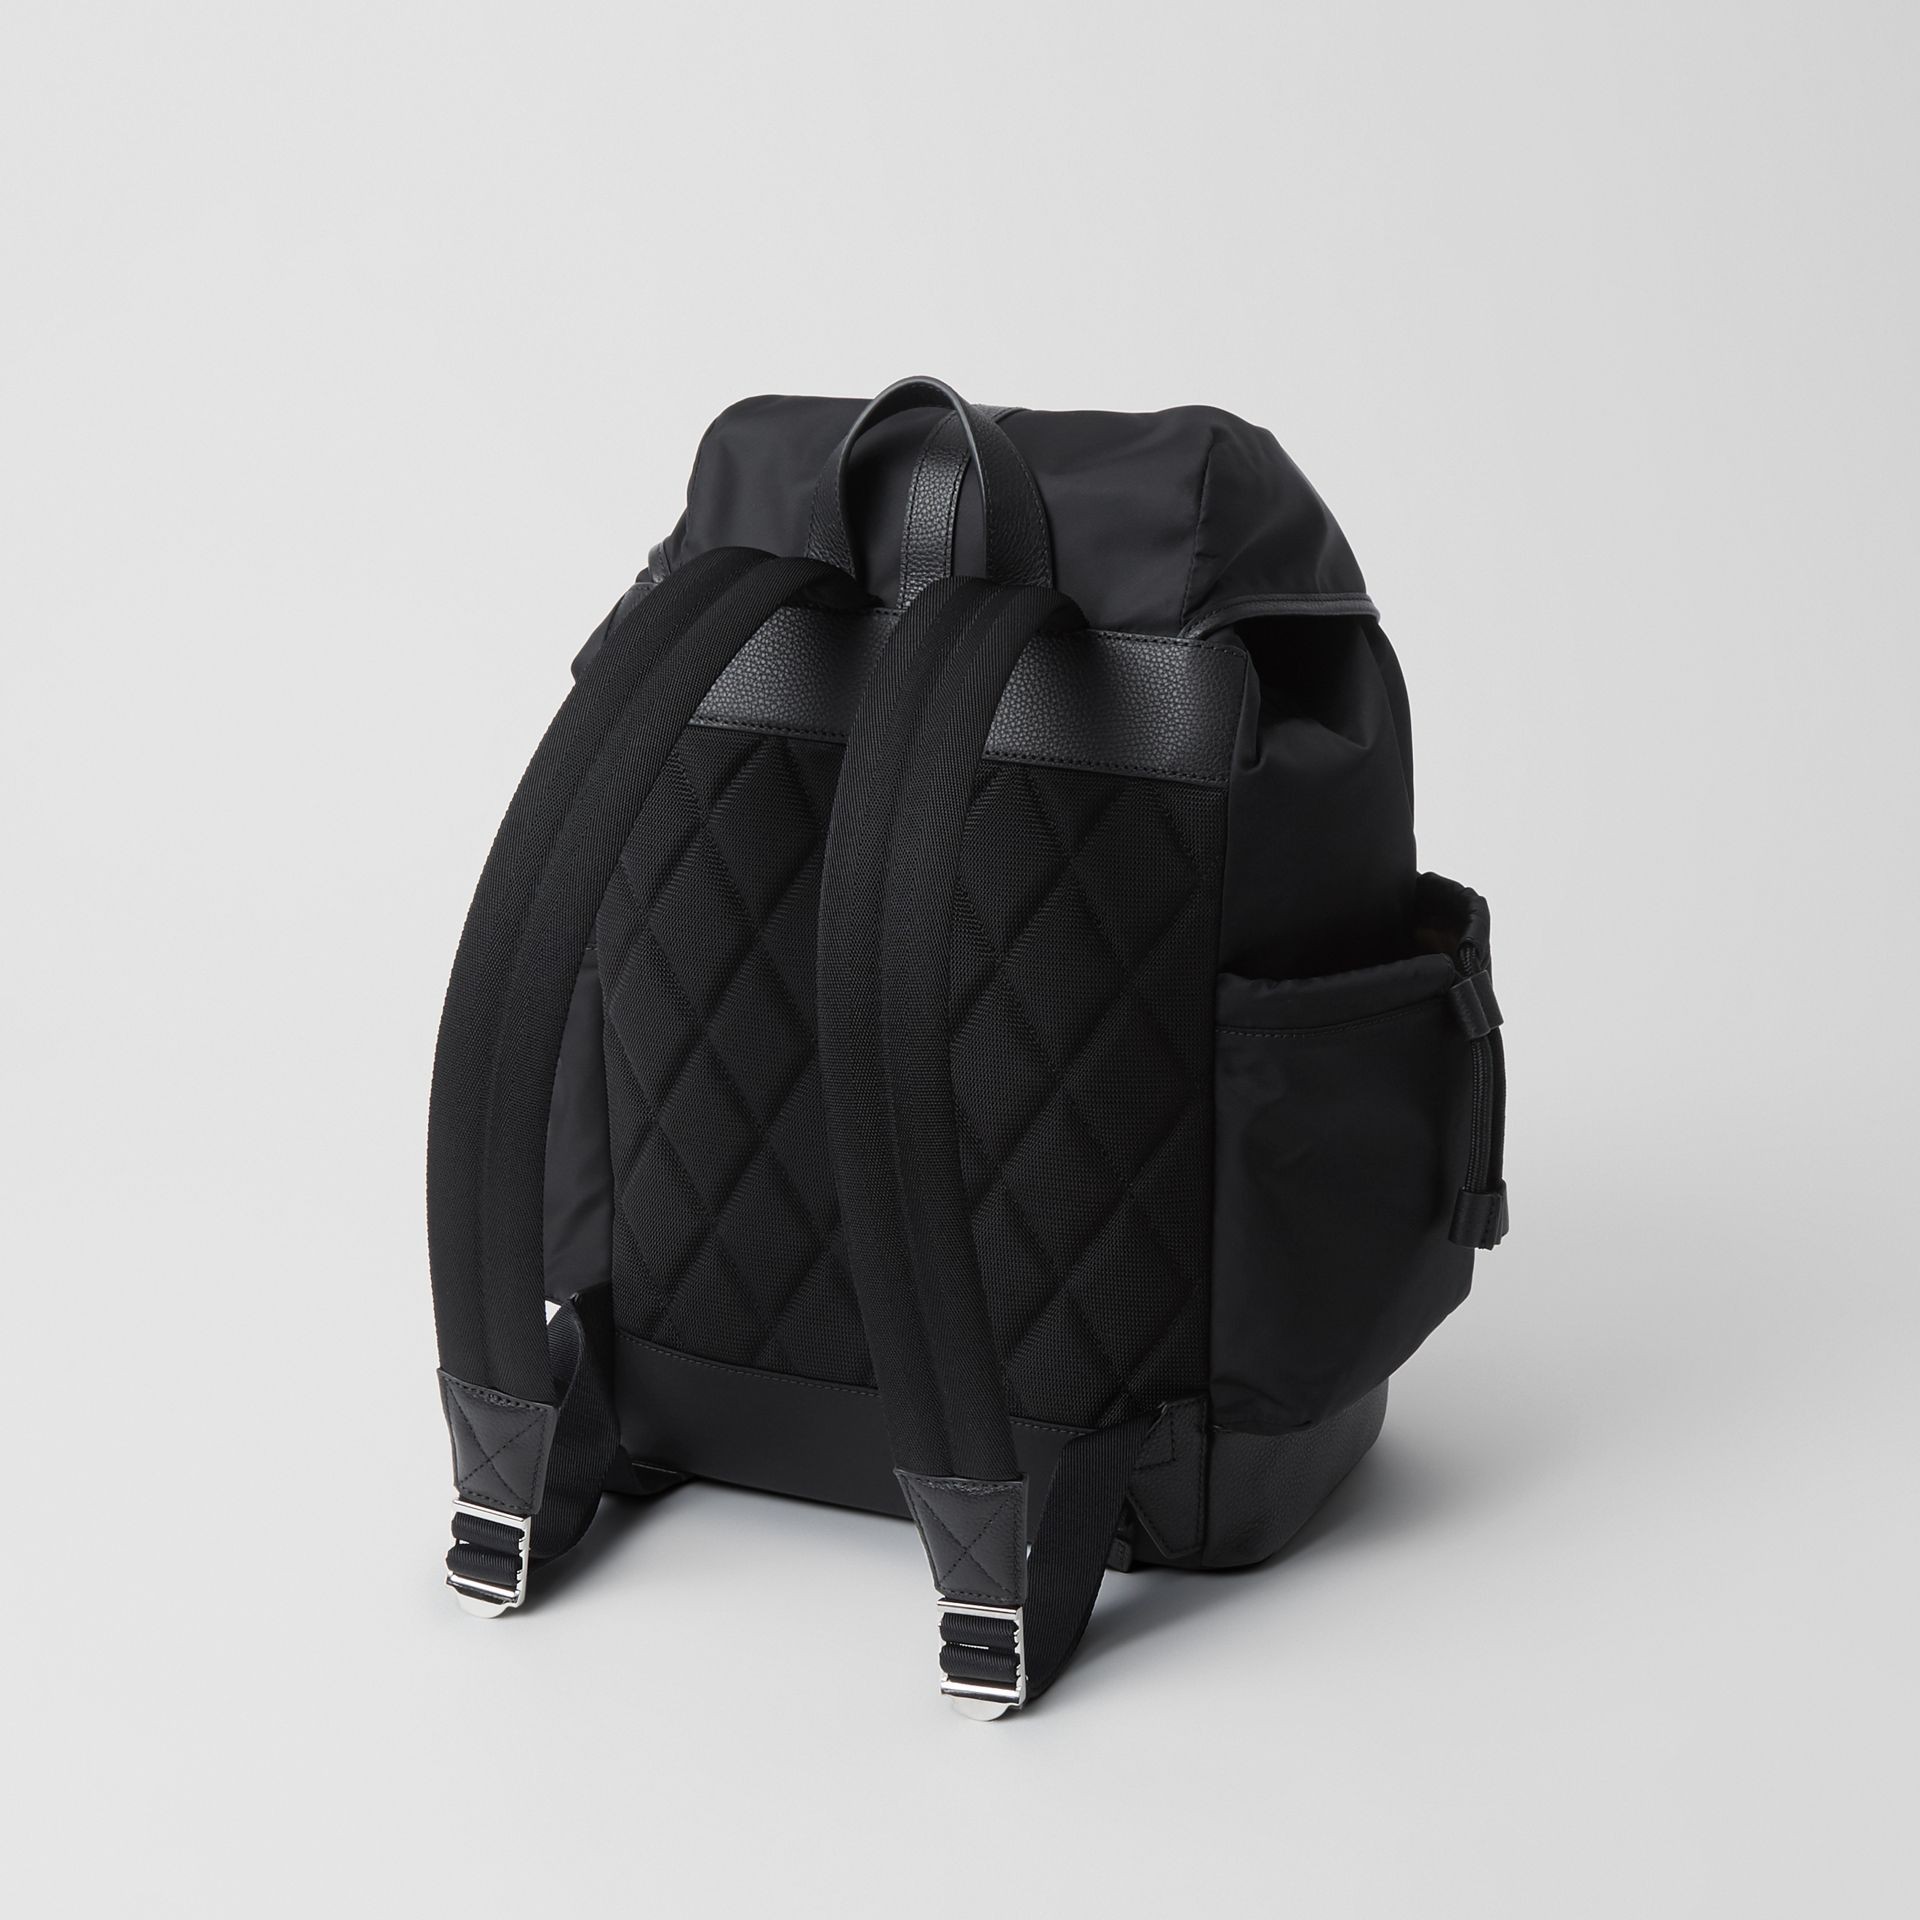 Leather Trim Baby Changing Rucksack in Black - Children | Burberry Canada - gallery image 2